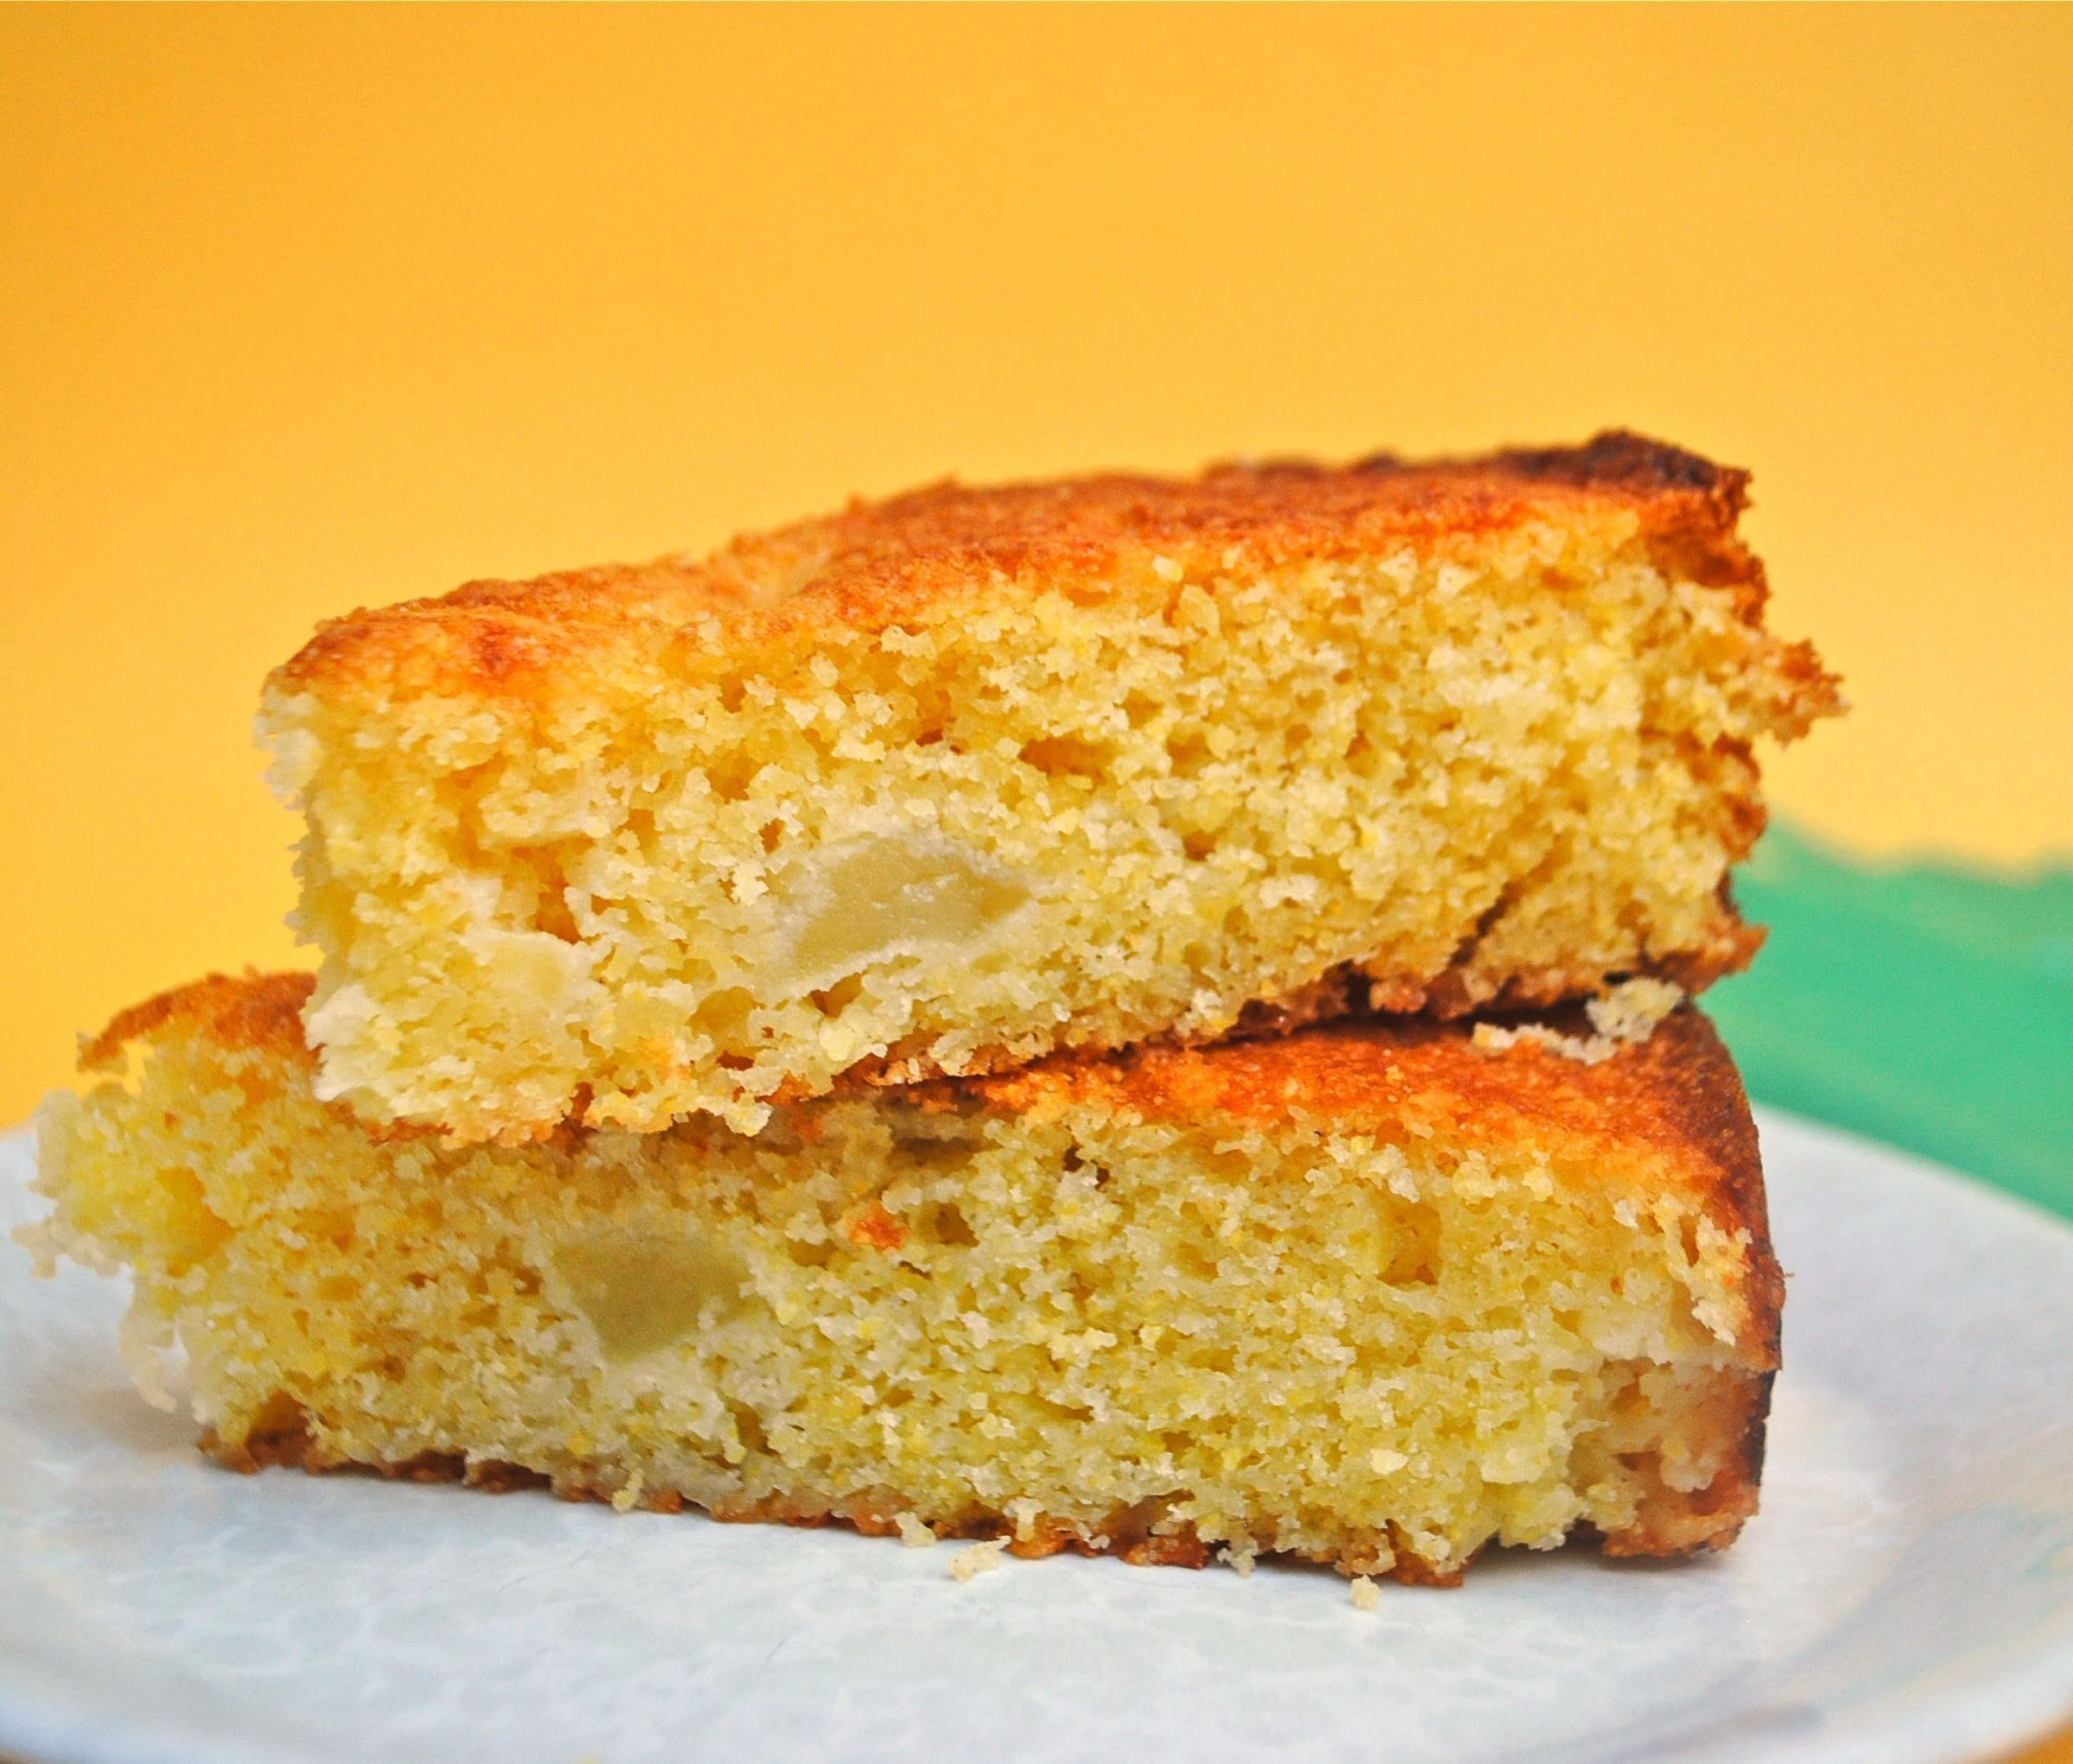 A diced Gala apple and some grated cheddar cheese give this rustic cake layers of seasonal flavor. Some cornmeal in the batter lends golden color and a little crunch.